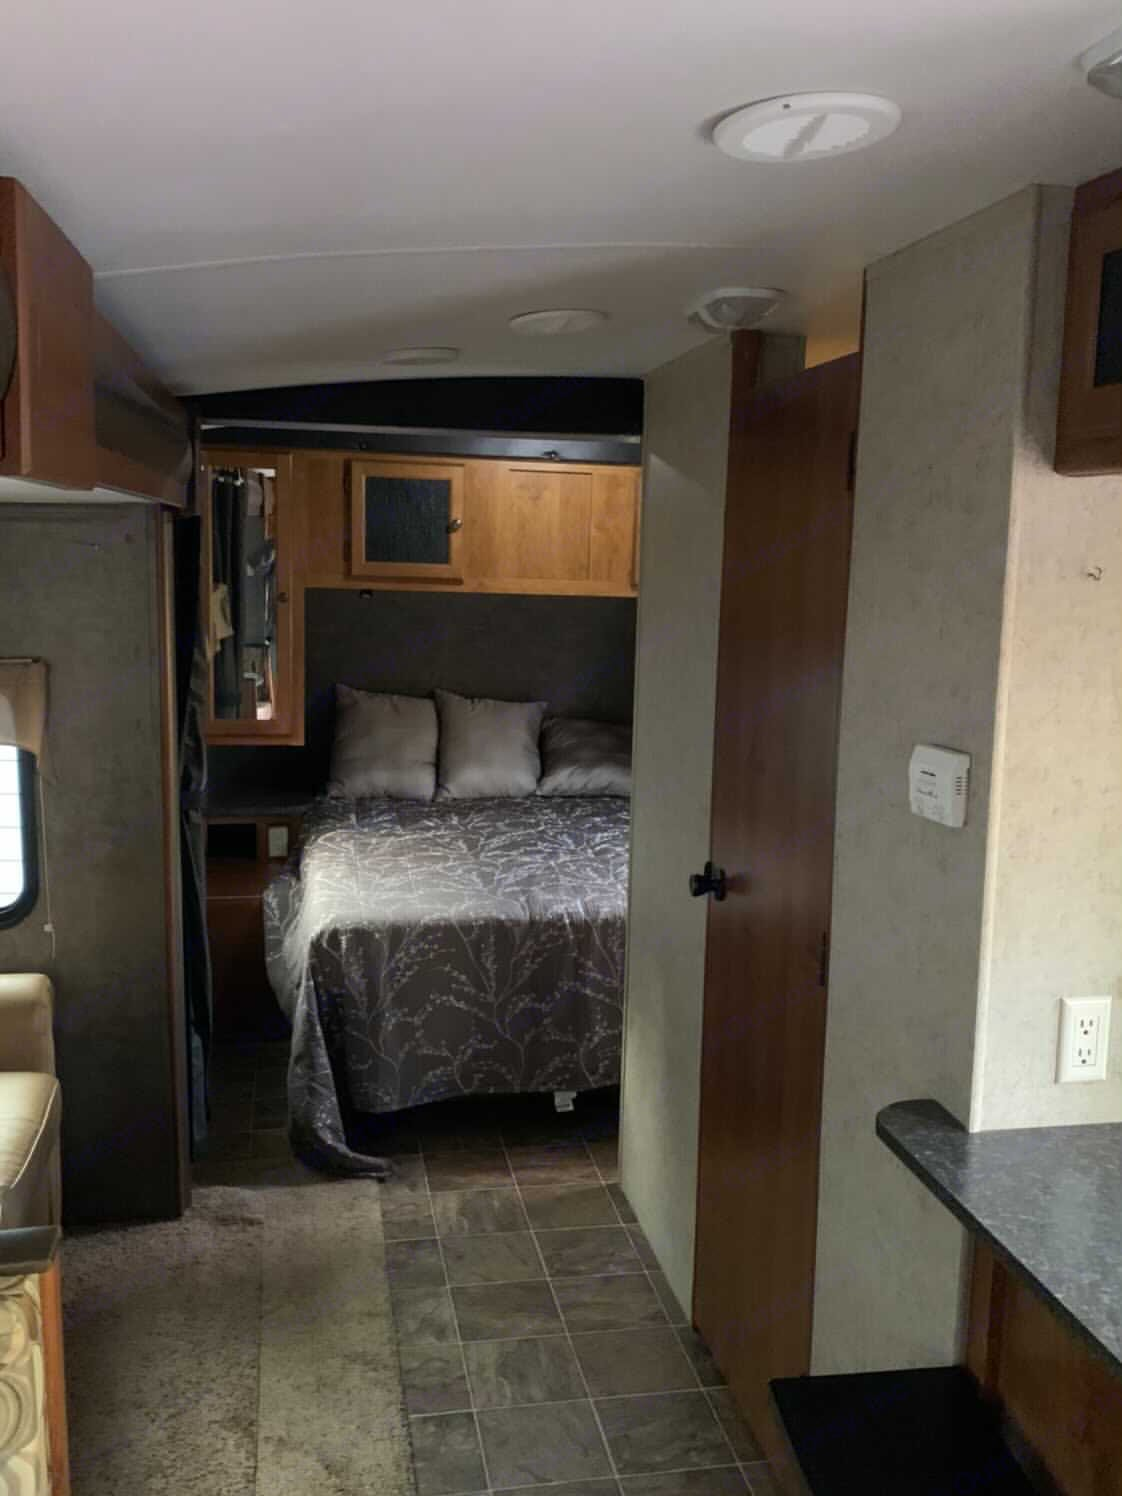 queen size bed with privacy curtain. Heartland Wilderness 2014